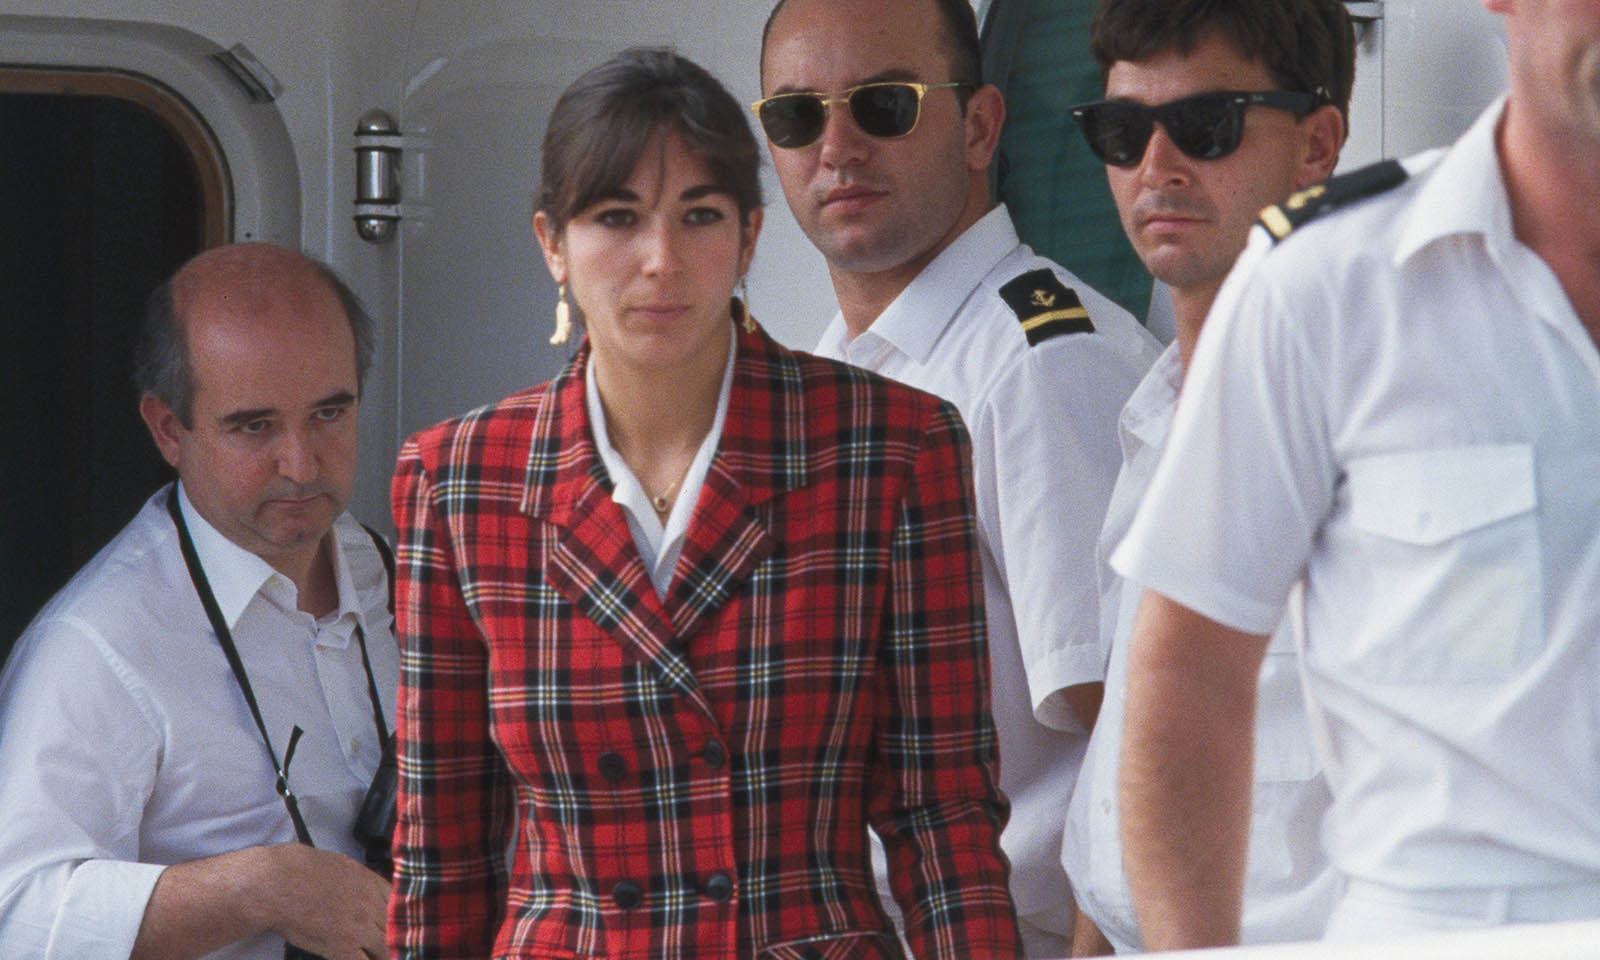 Since it was revealed that Ghislaine Maxwell was married, everyone assumed it was Jeffrey Epstein. But now, we may know the identity of her husband.